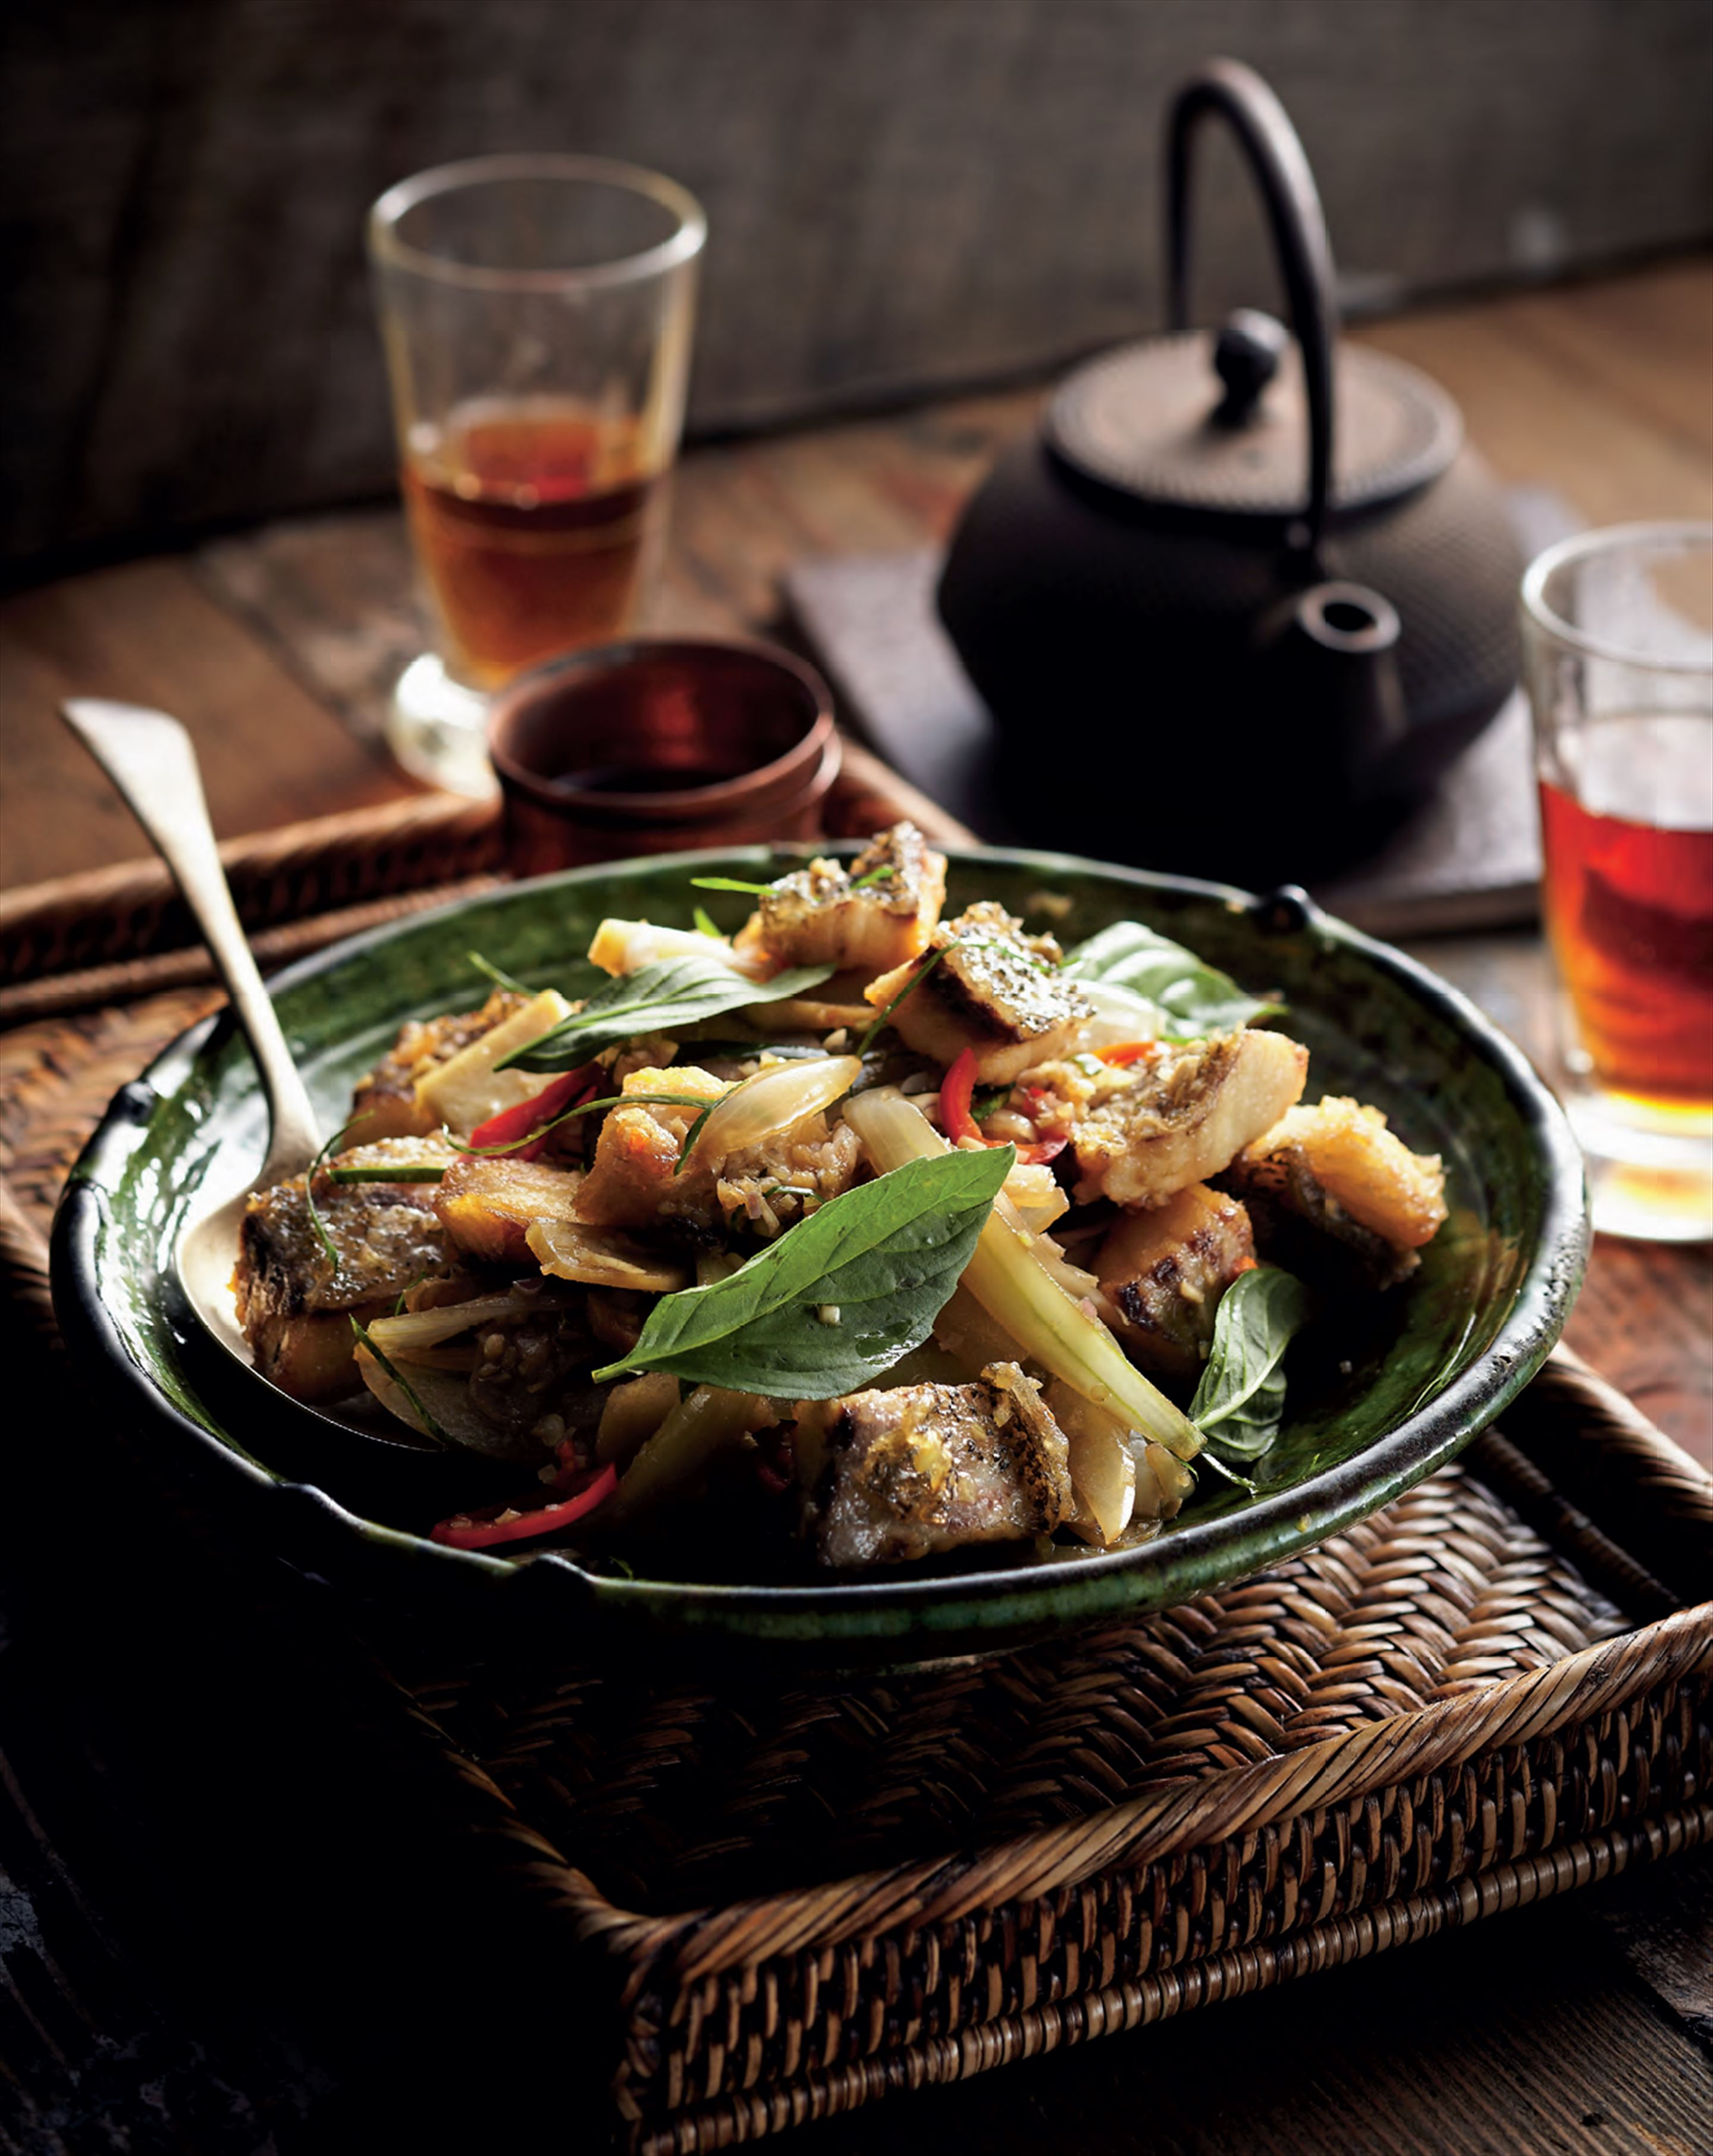 Wok-tossed catfish with galangal and green peppercorns